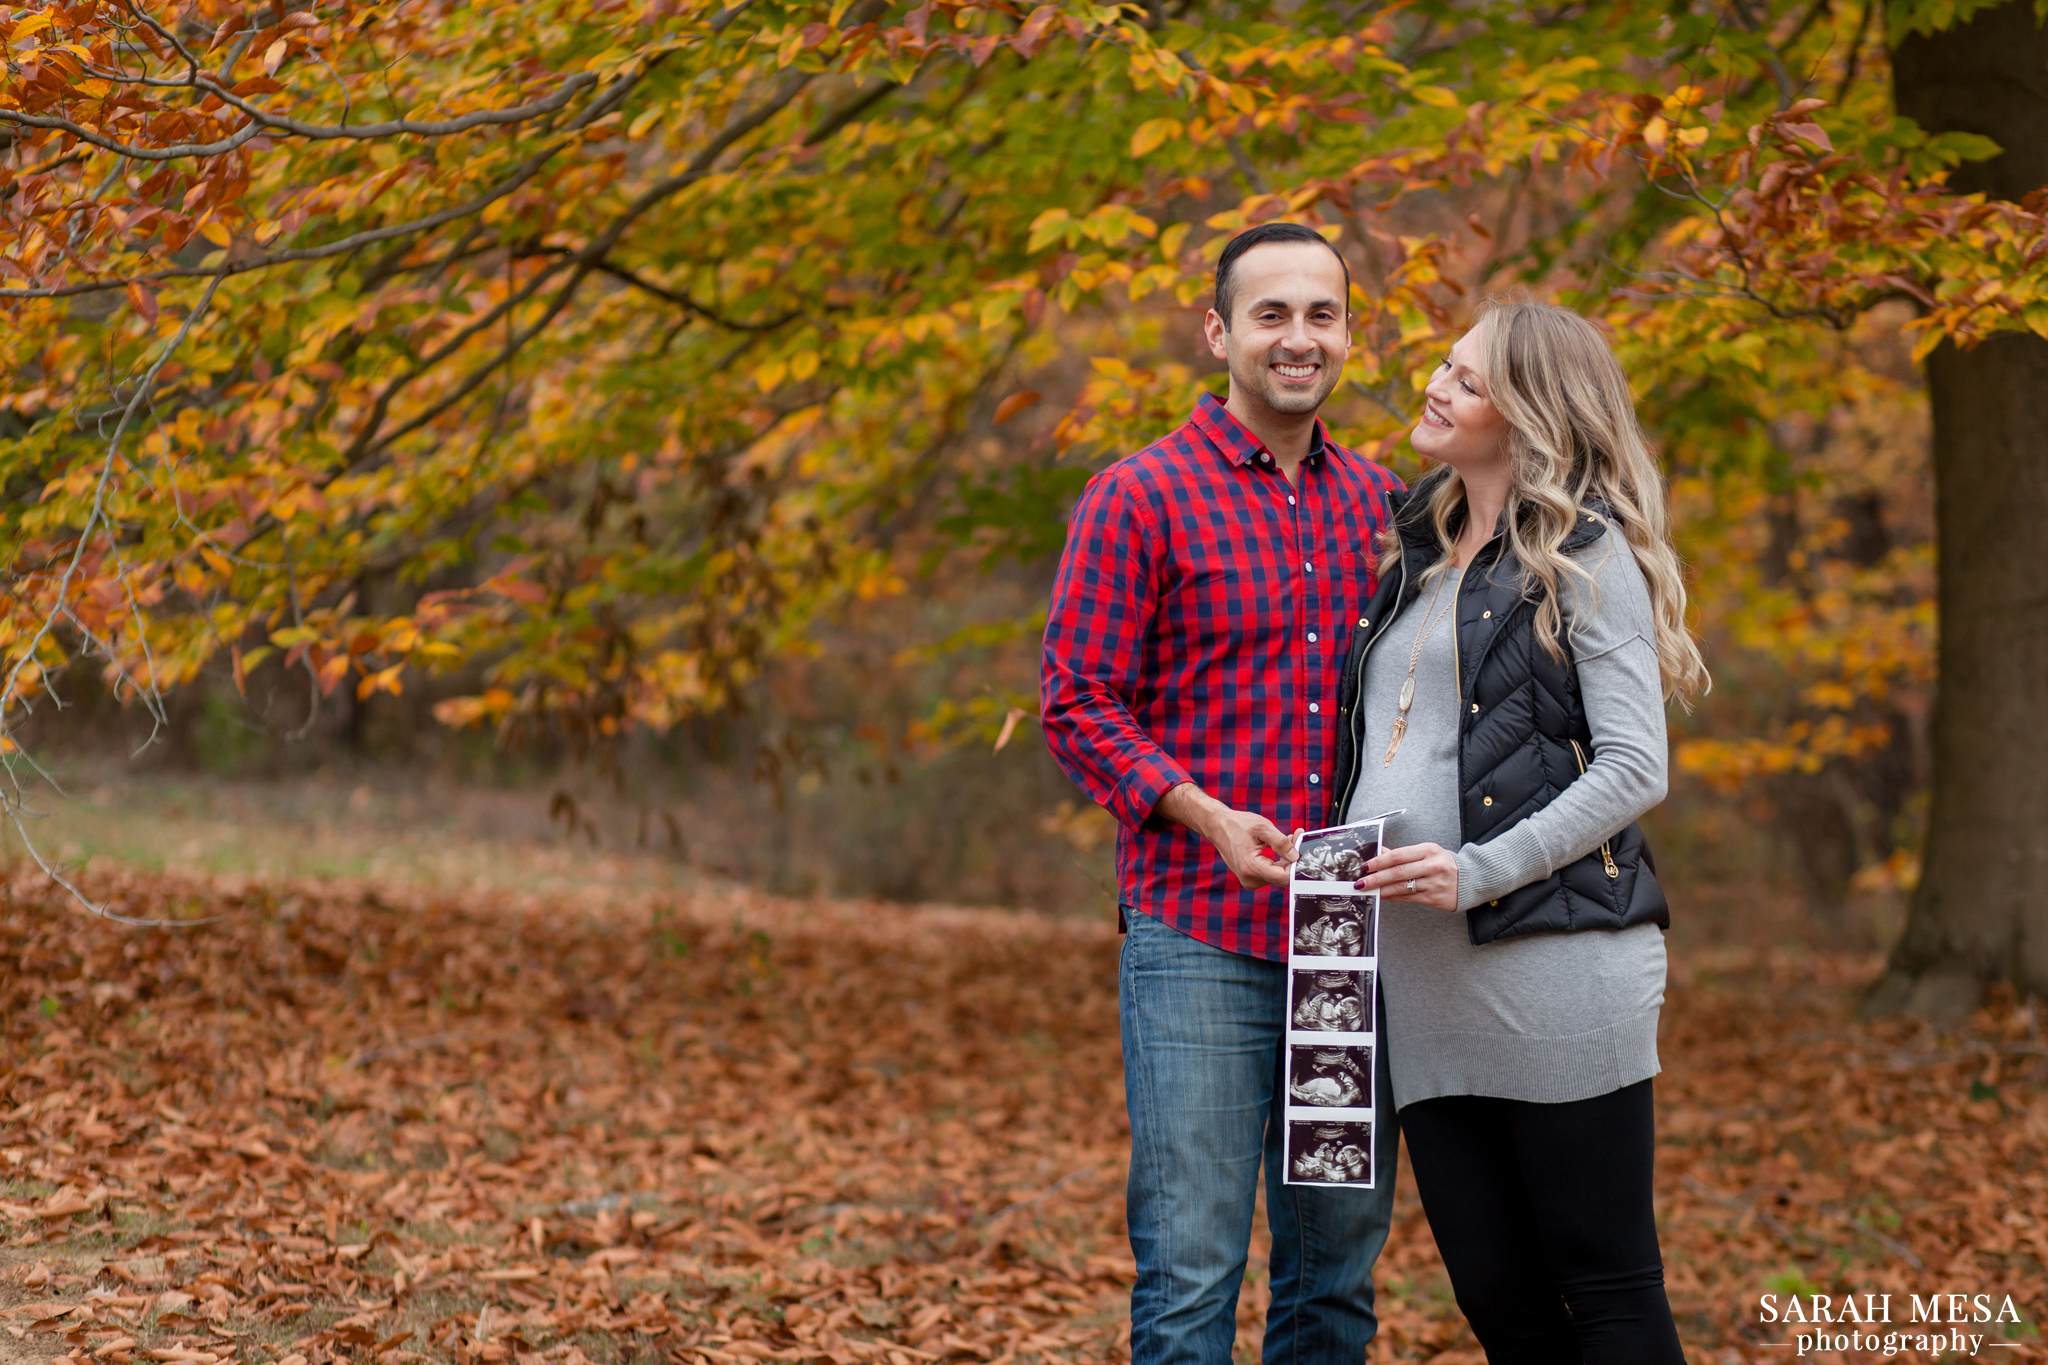 Sarah Mesa Photography | Louisville Maternity Photographer